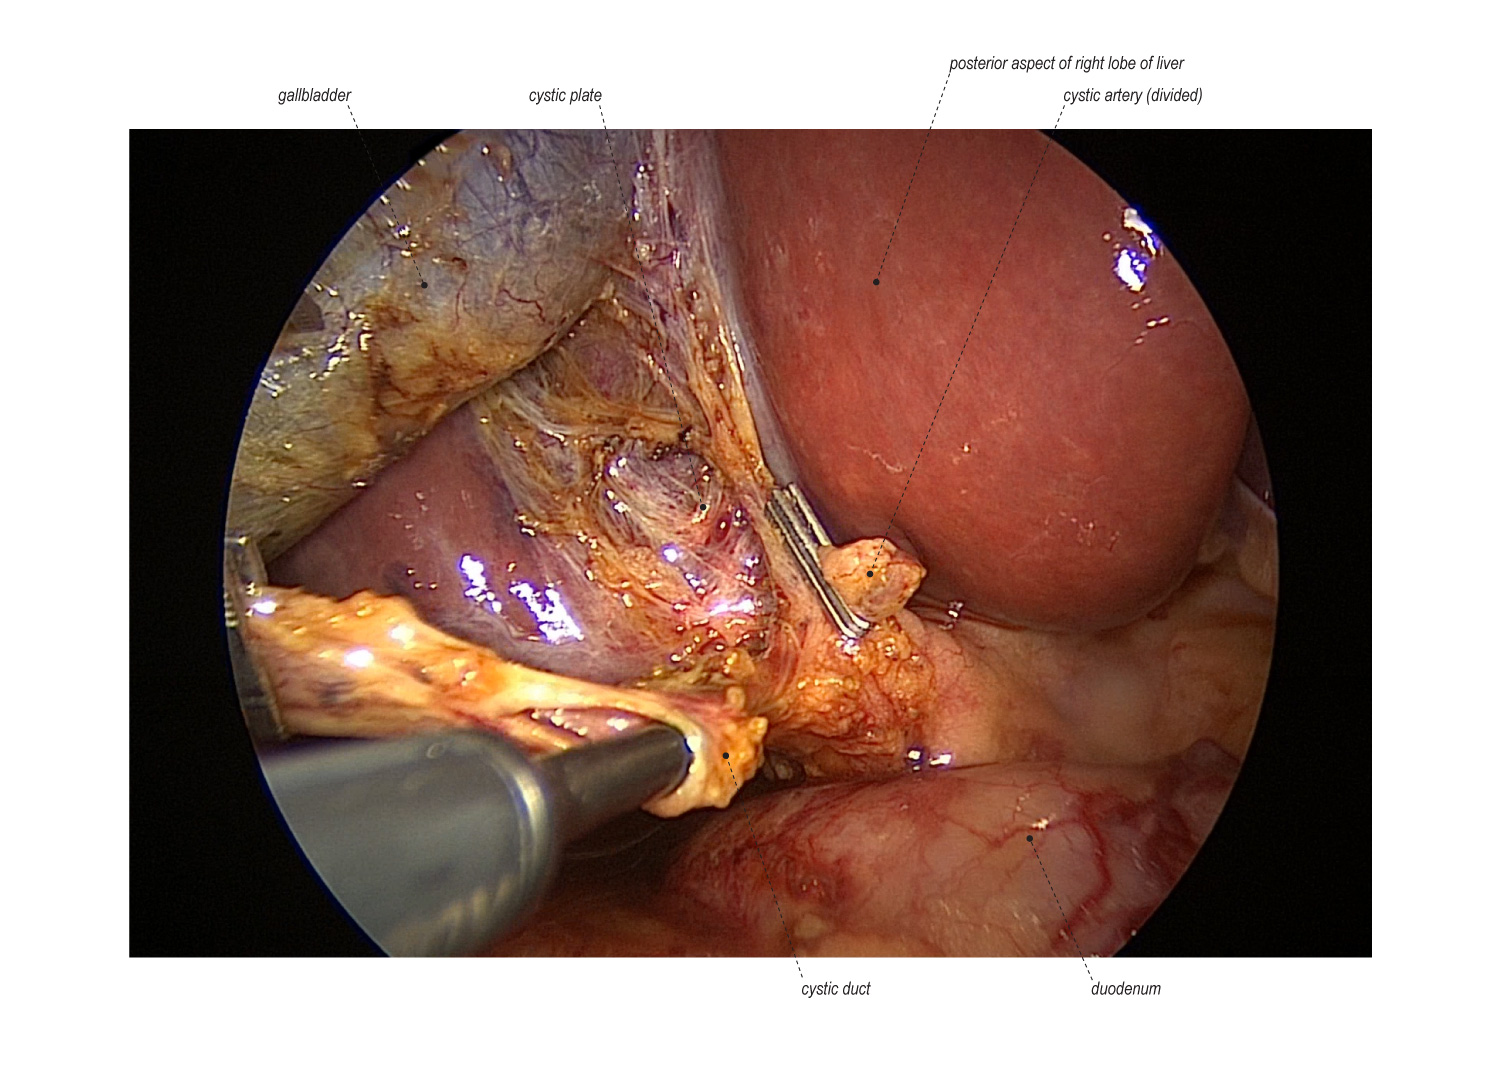 Mini-Laparoscopic Cholecystectomy with Intraoperative Cholangiogram ...